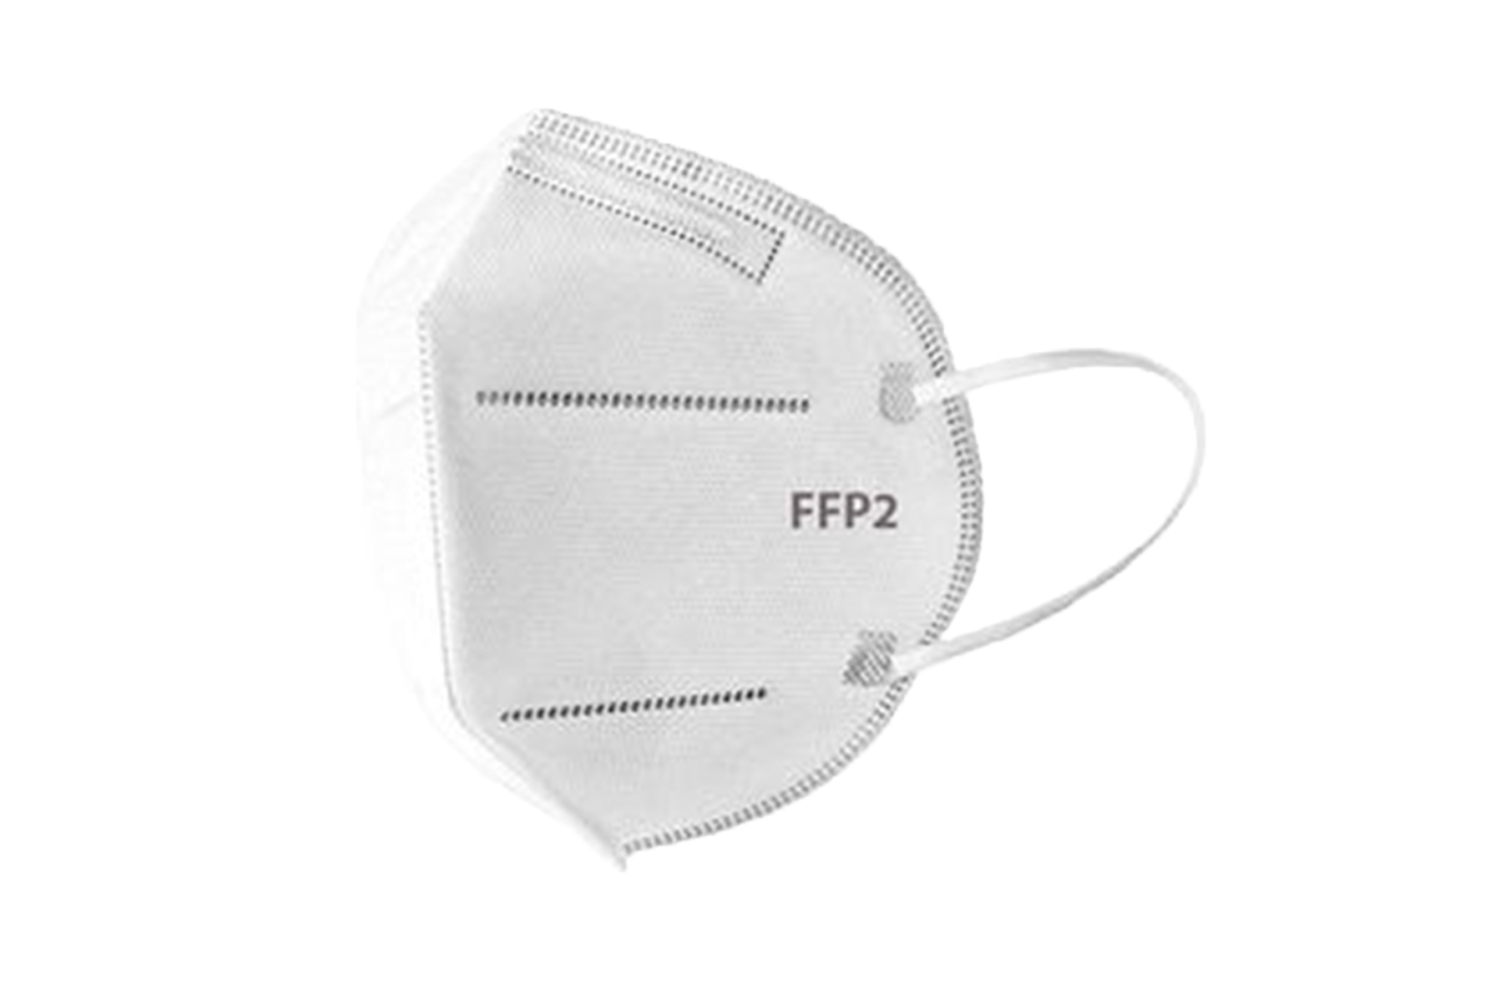 images/j2store/products/diffusees/86303-FFP2-MASK-EA.jpg